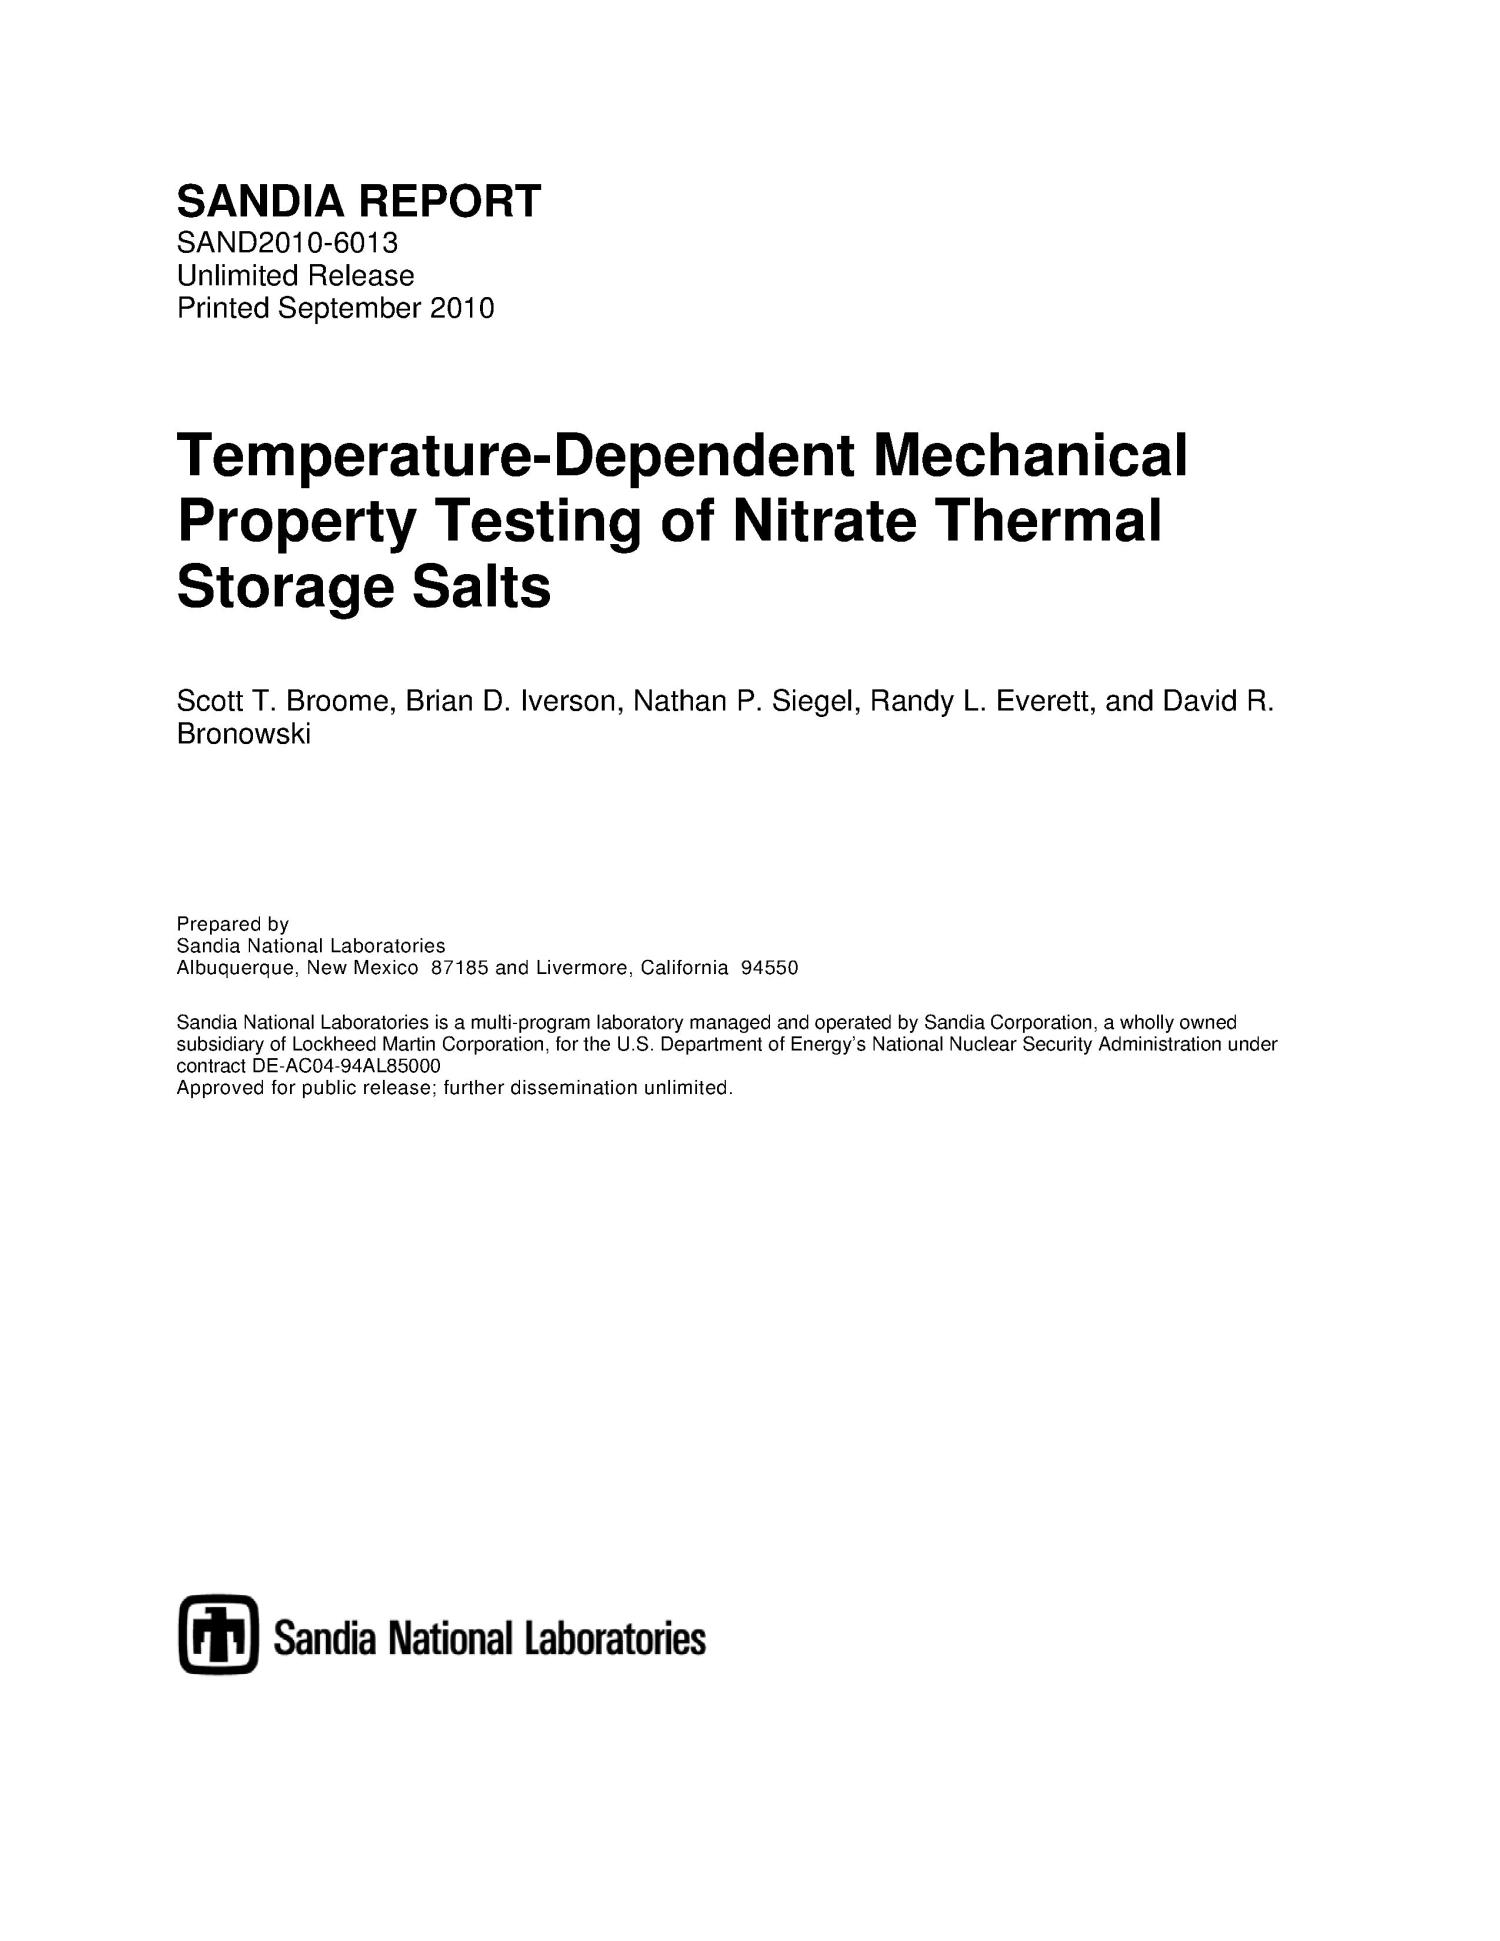 Temperature-dependent mechanical property testing of nitrate thermal storage salts.                                                                                                      [Sequence #]: 1 of 35